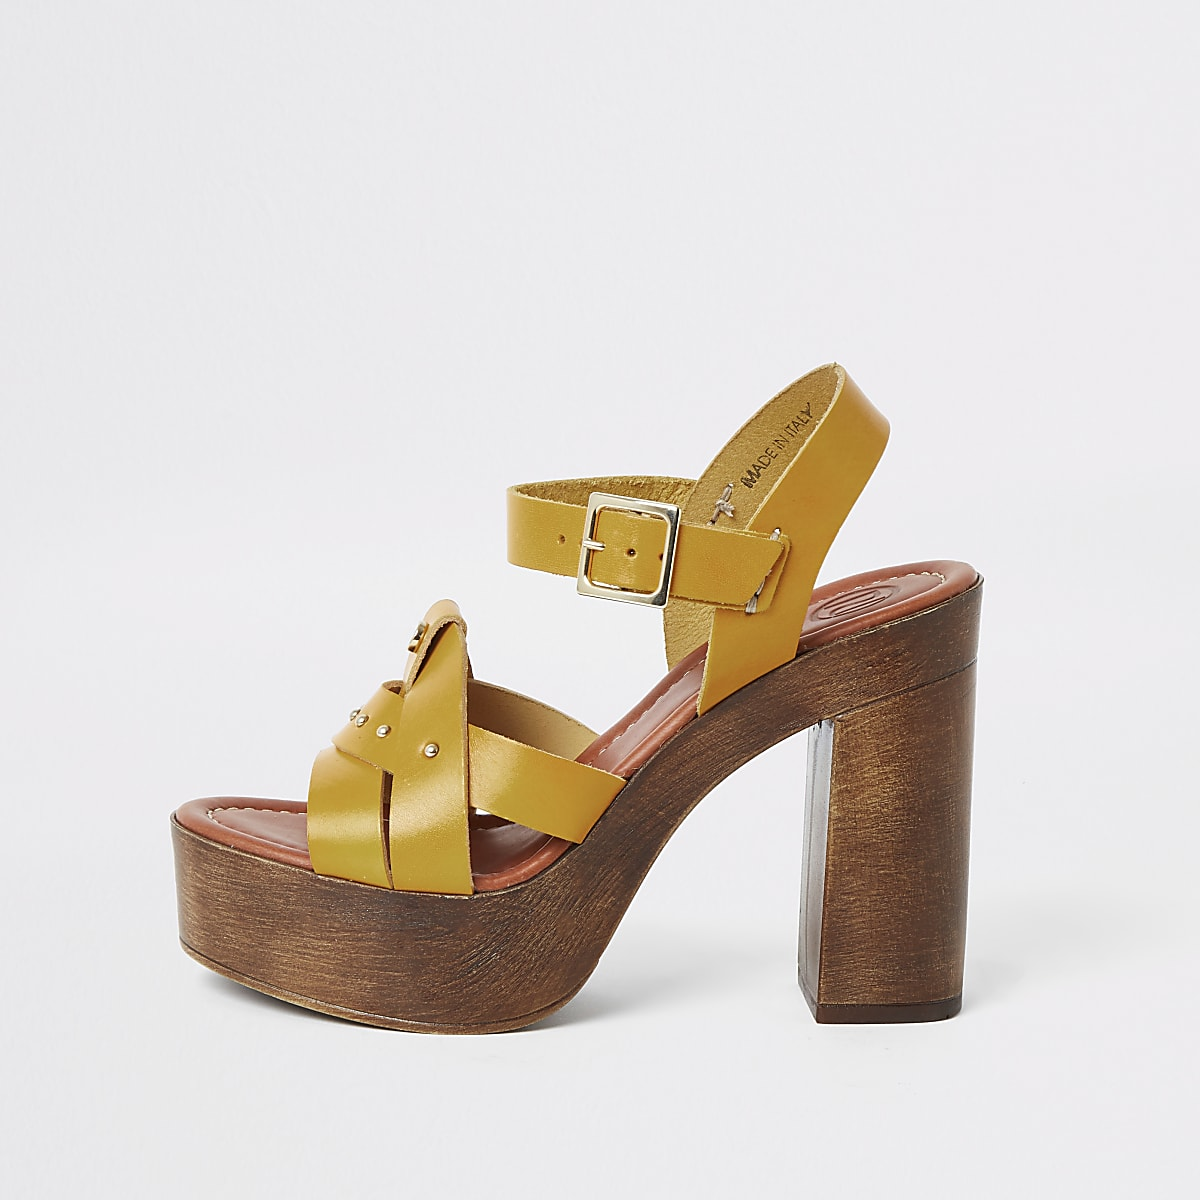 a2e2f025a1 Yellow leather studded platform heels - Sandals - Shoes & Boots - women